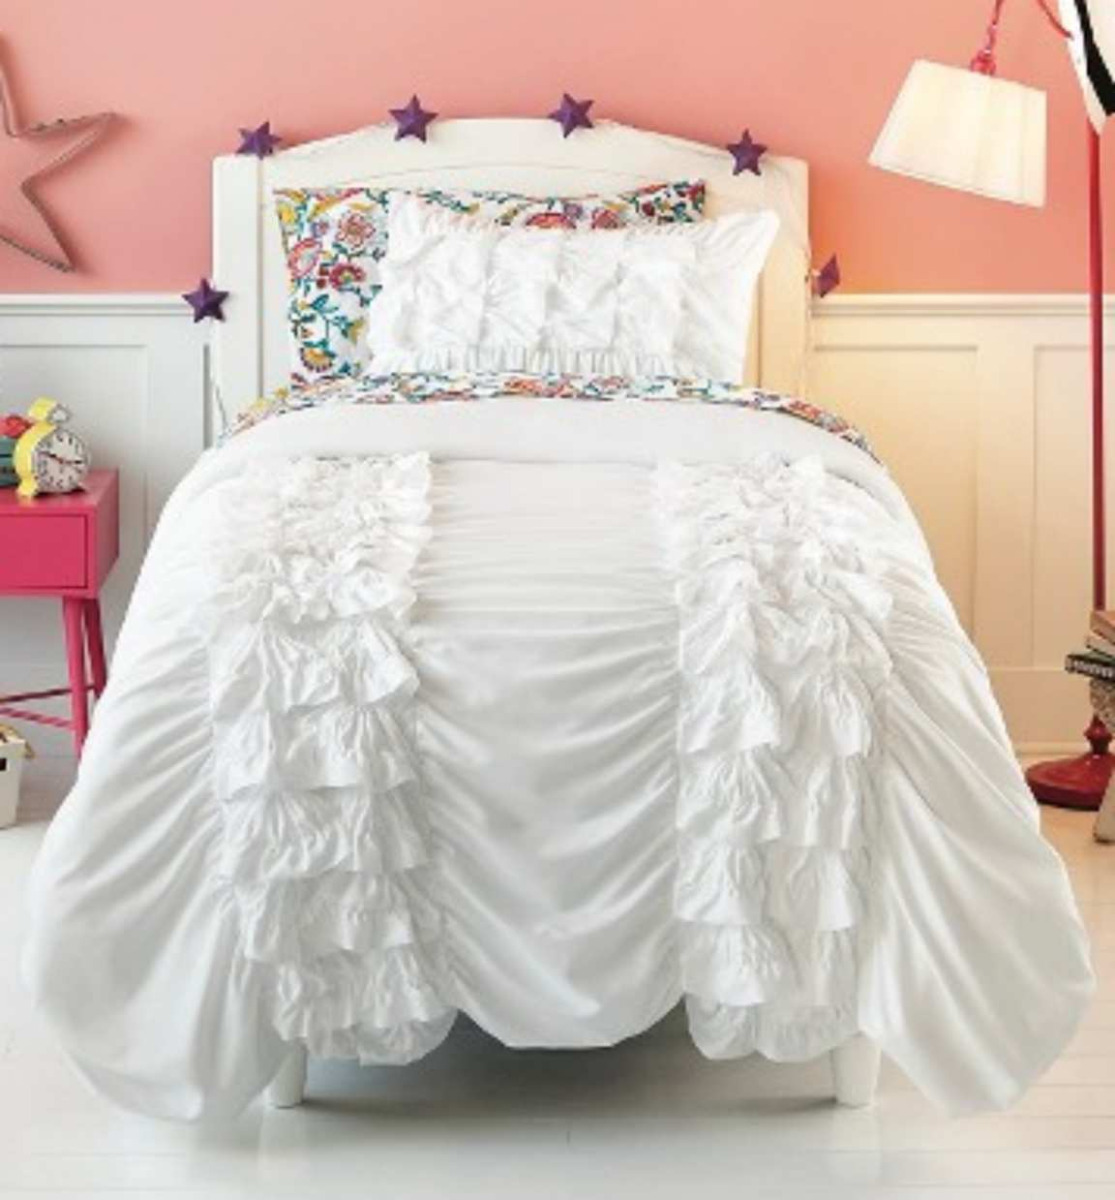 white bed ruffle comforter and arc stand lamp